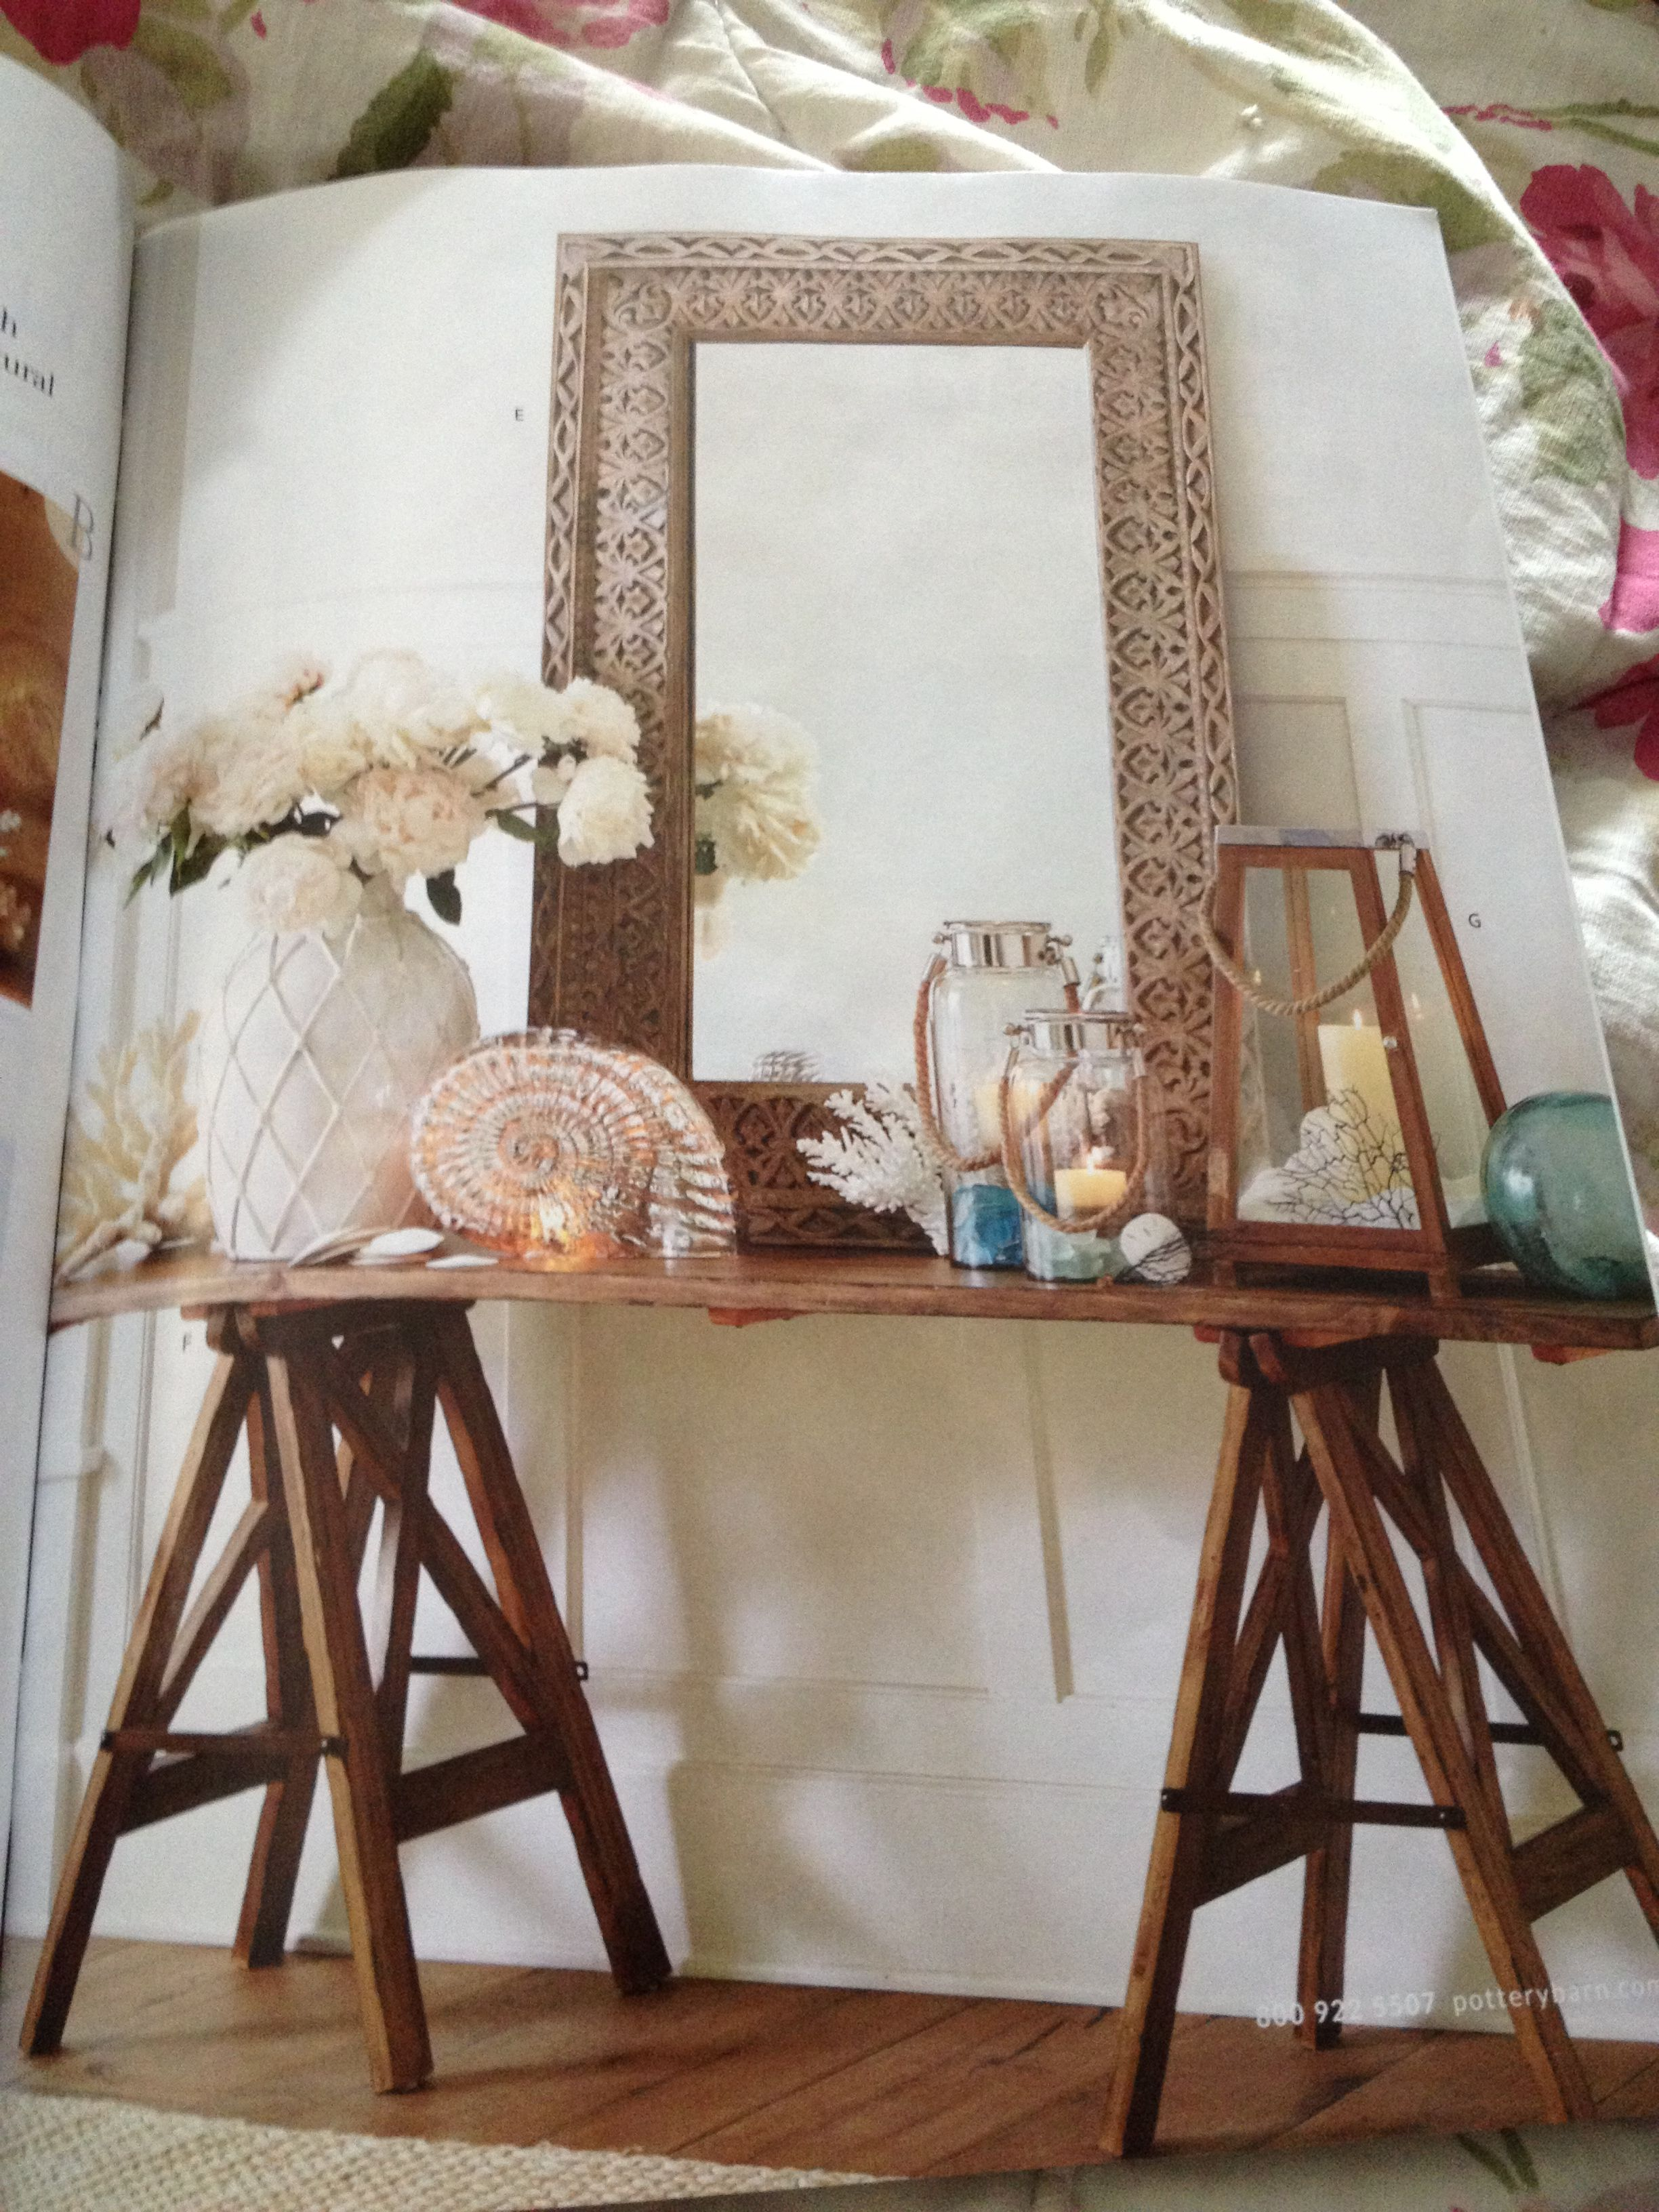 Pottery Barn Mirror To Sit On Mantel 38 X 50 Decorating Ideas